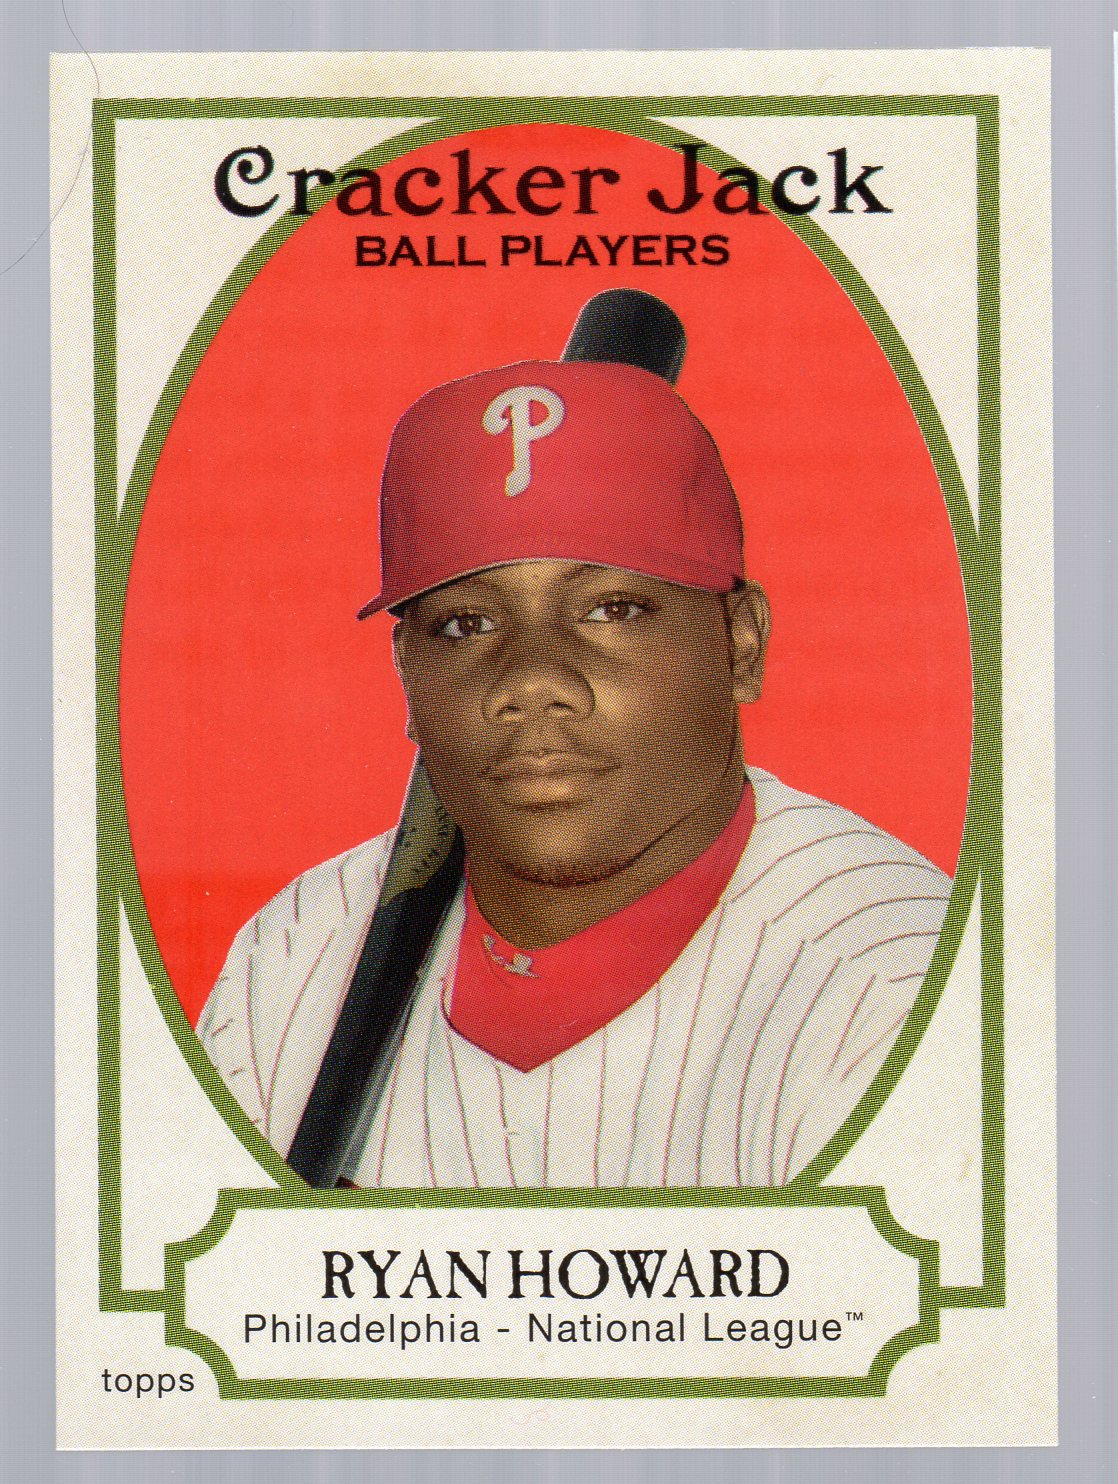 2005 Topps Cracker Jack #182 Ryan Howard